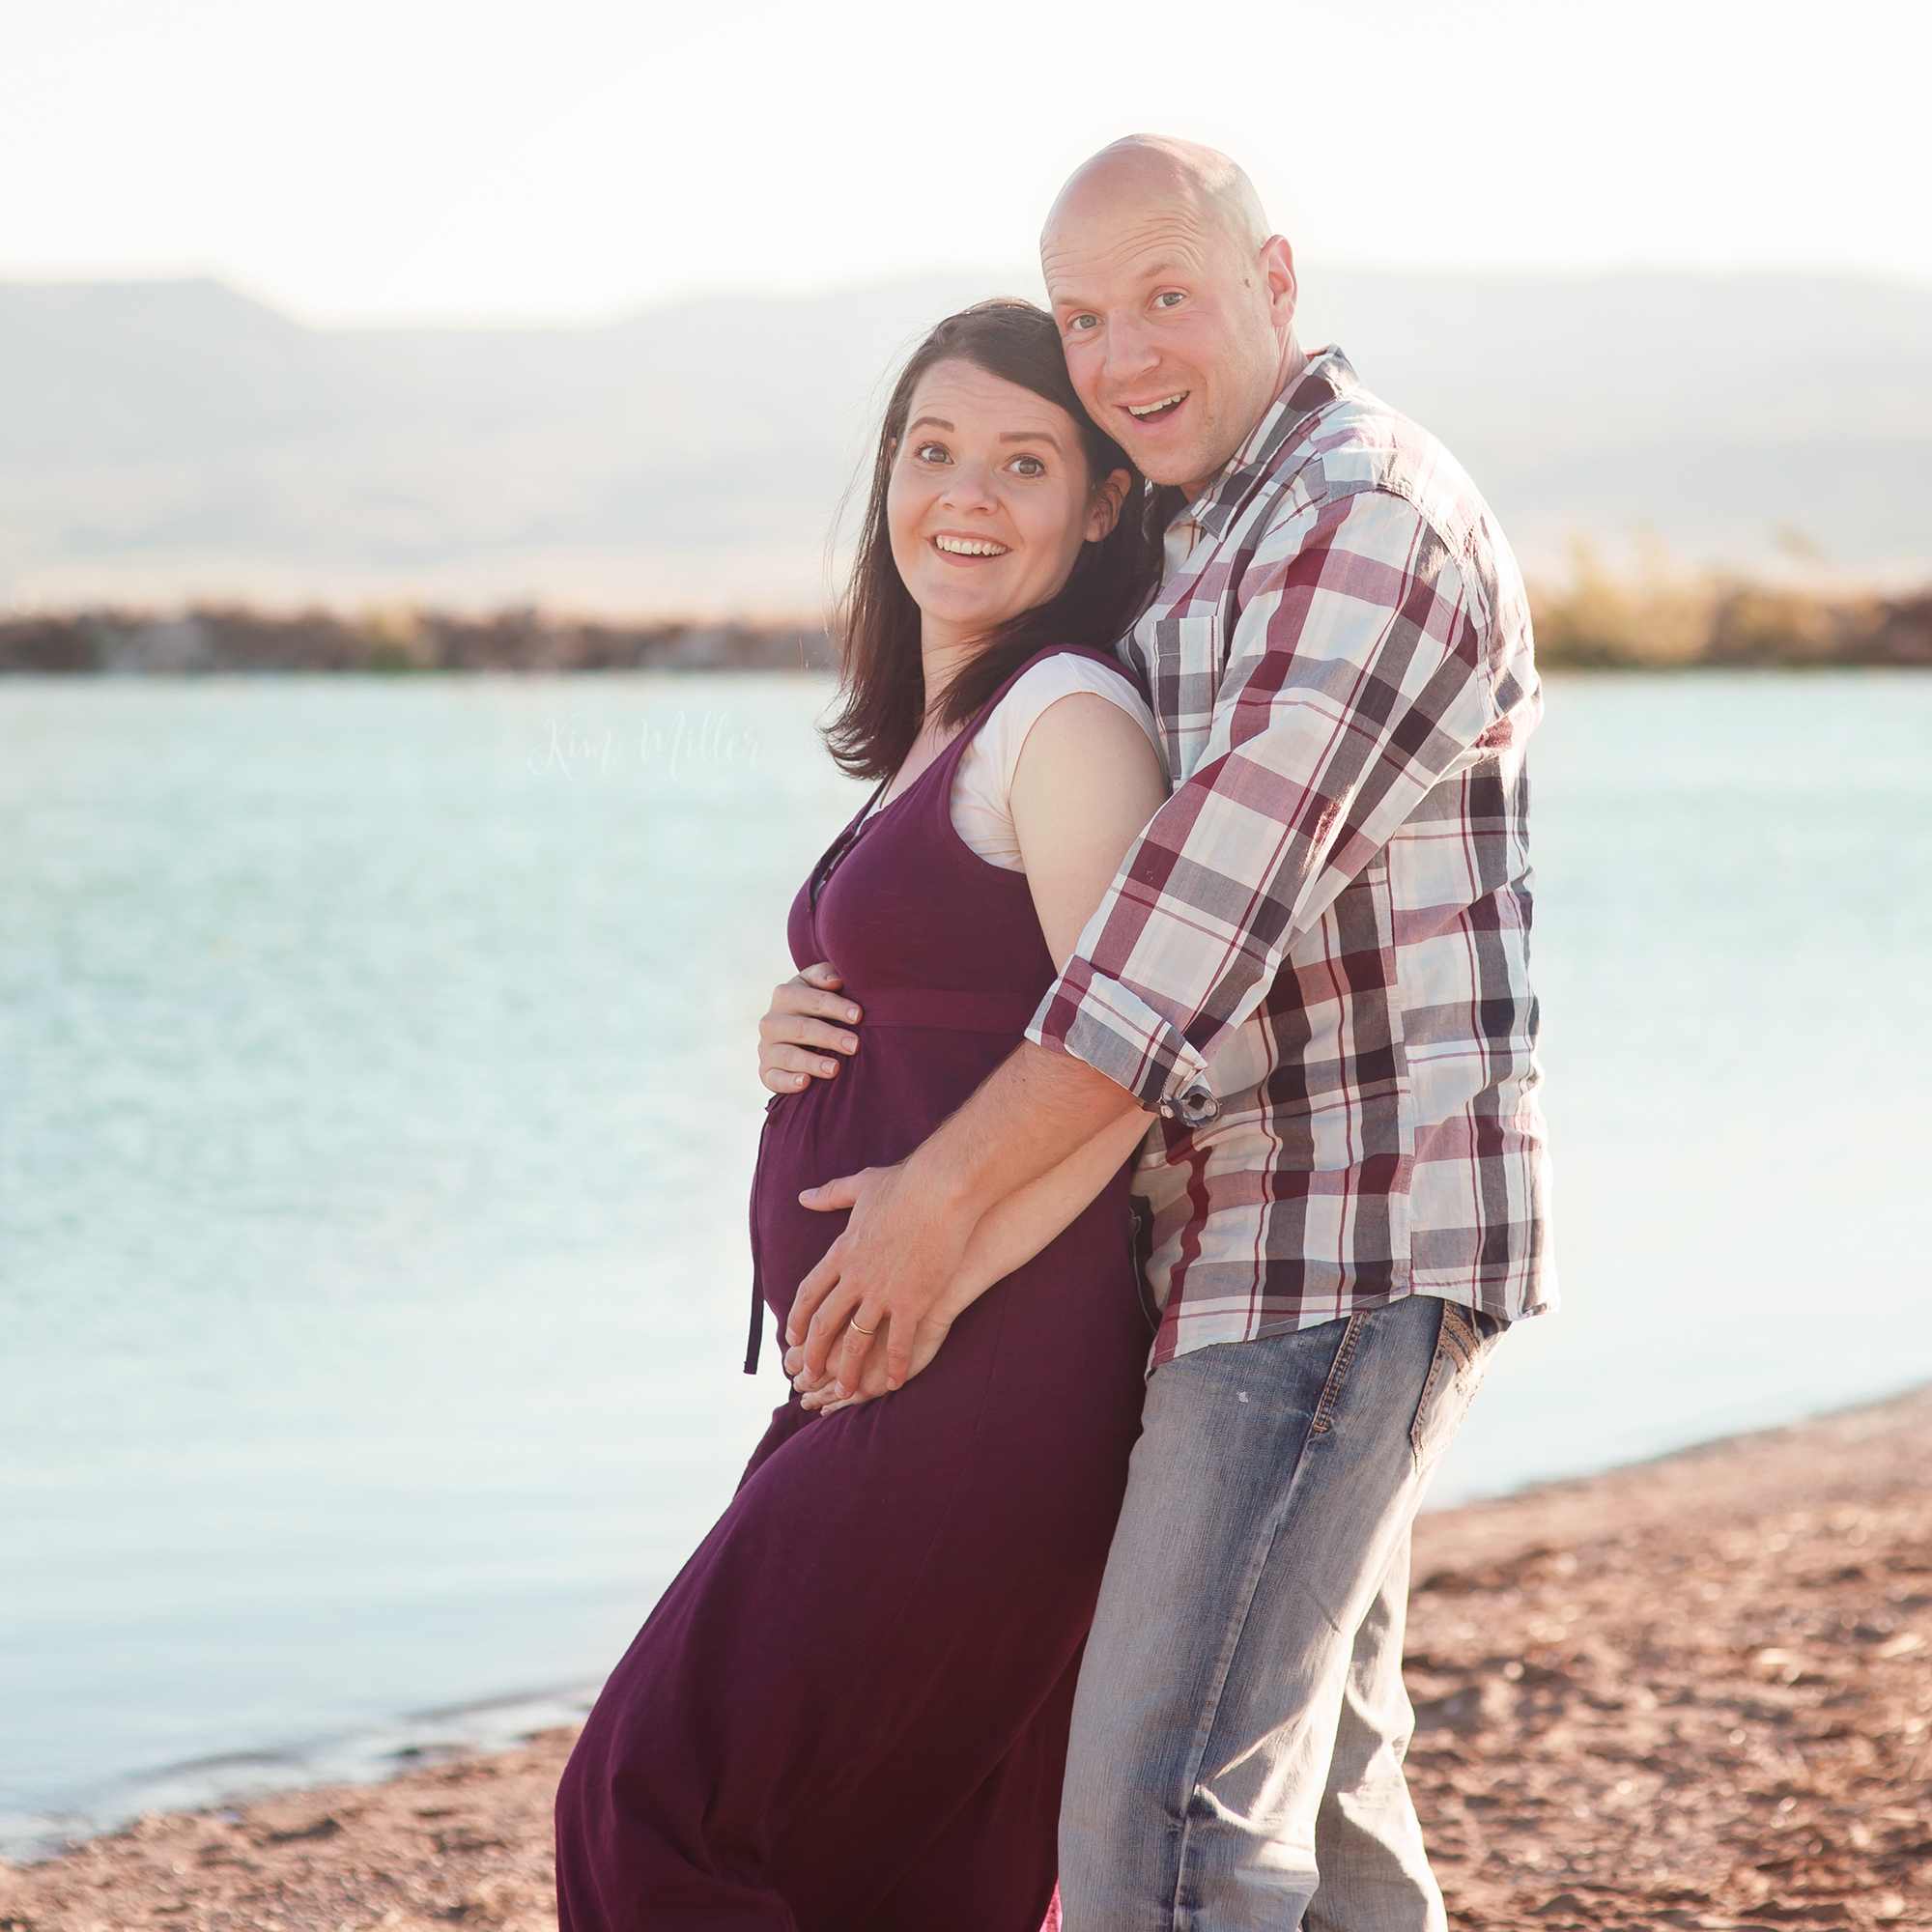 Bear Lake, Family Portraits, Beach Photos, beach Photography, Las Vegas Portraits, Maternity Portaits, Las Vegas Maternity Photographer, Las Vegas Maternity Photography